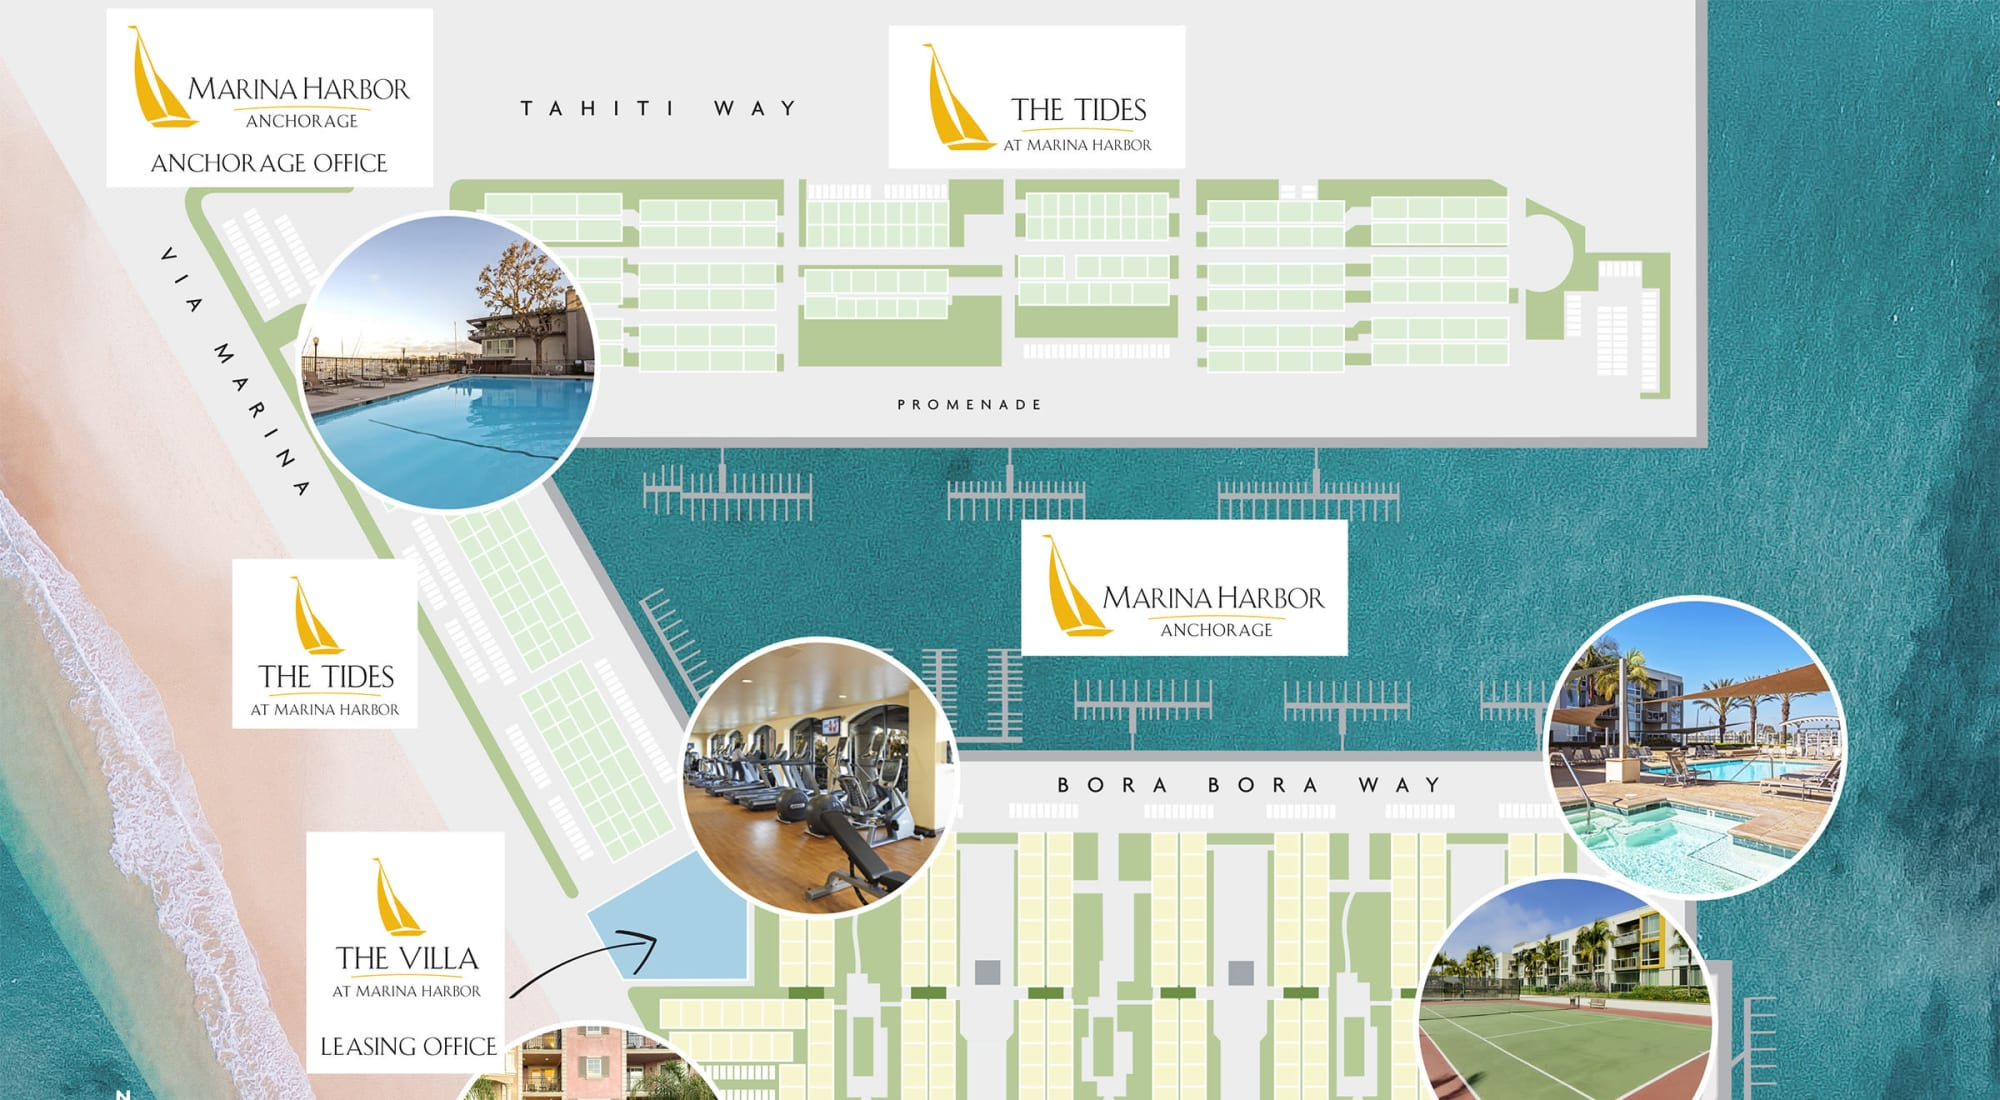 Overall neighborhood site plan for Waters Edge at Marina Harbor in Marina Del Rey, California